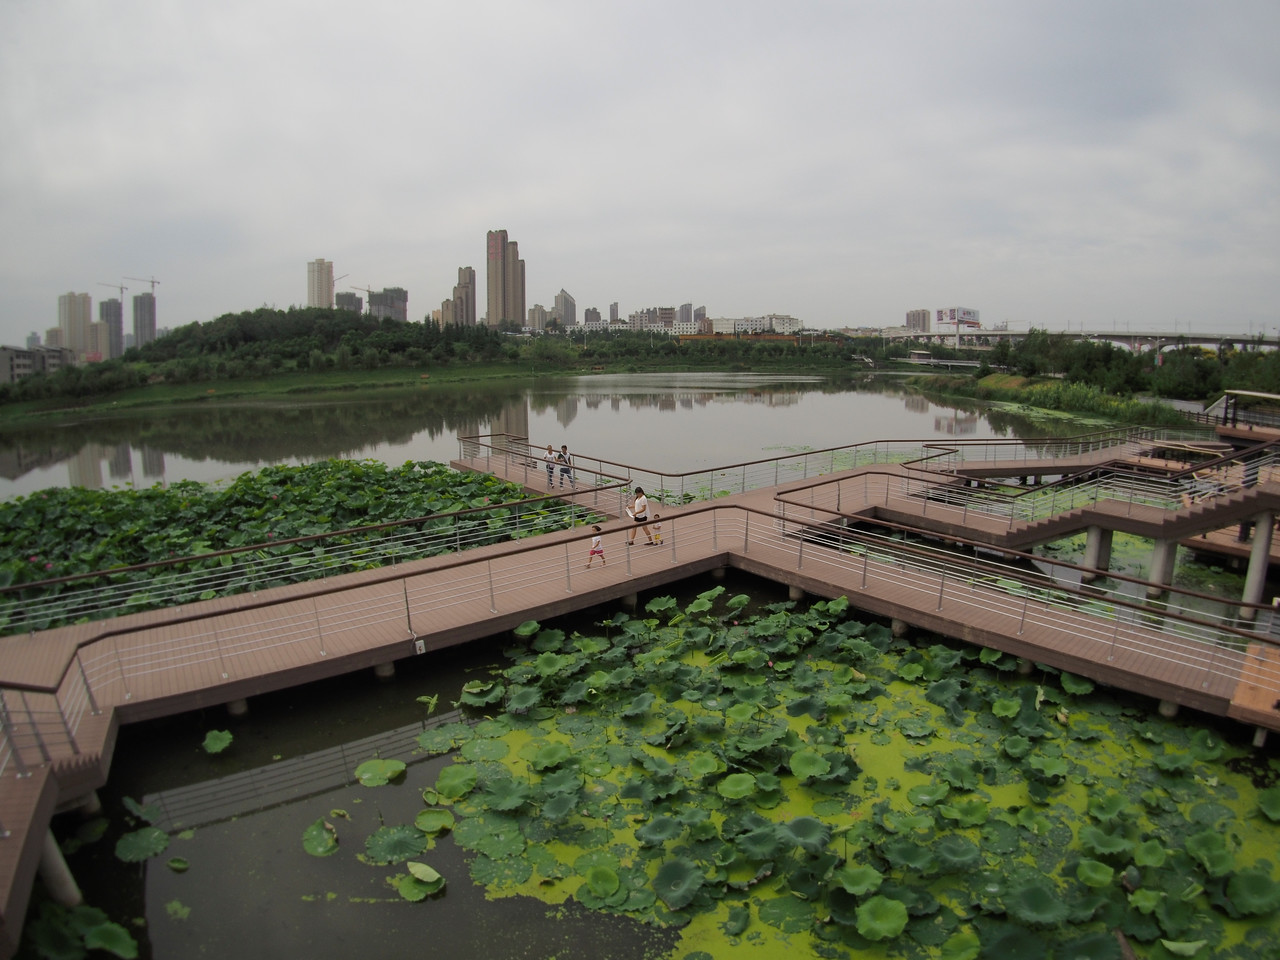 20150905_1301_1672 滻河 ChanHe Park, Xi'an